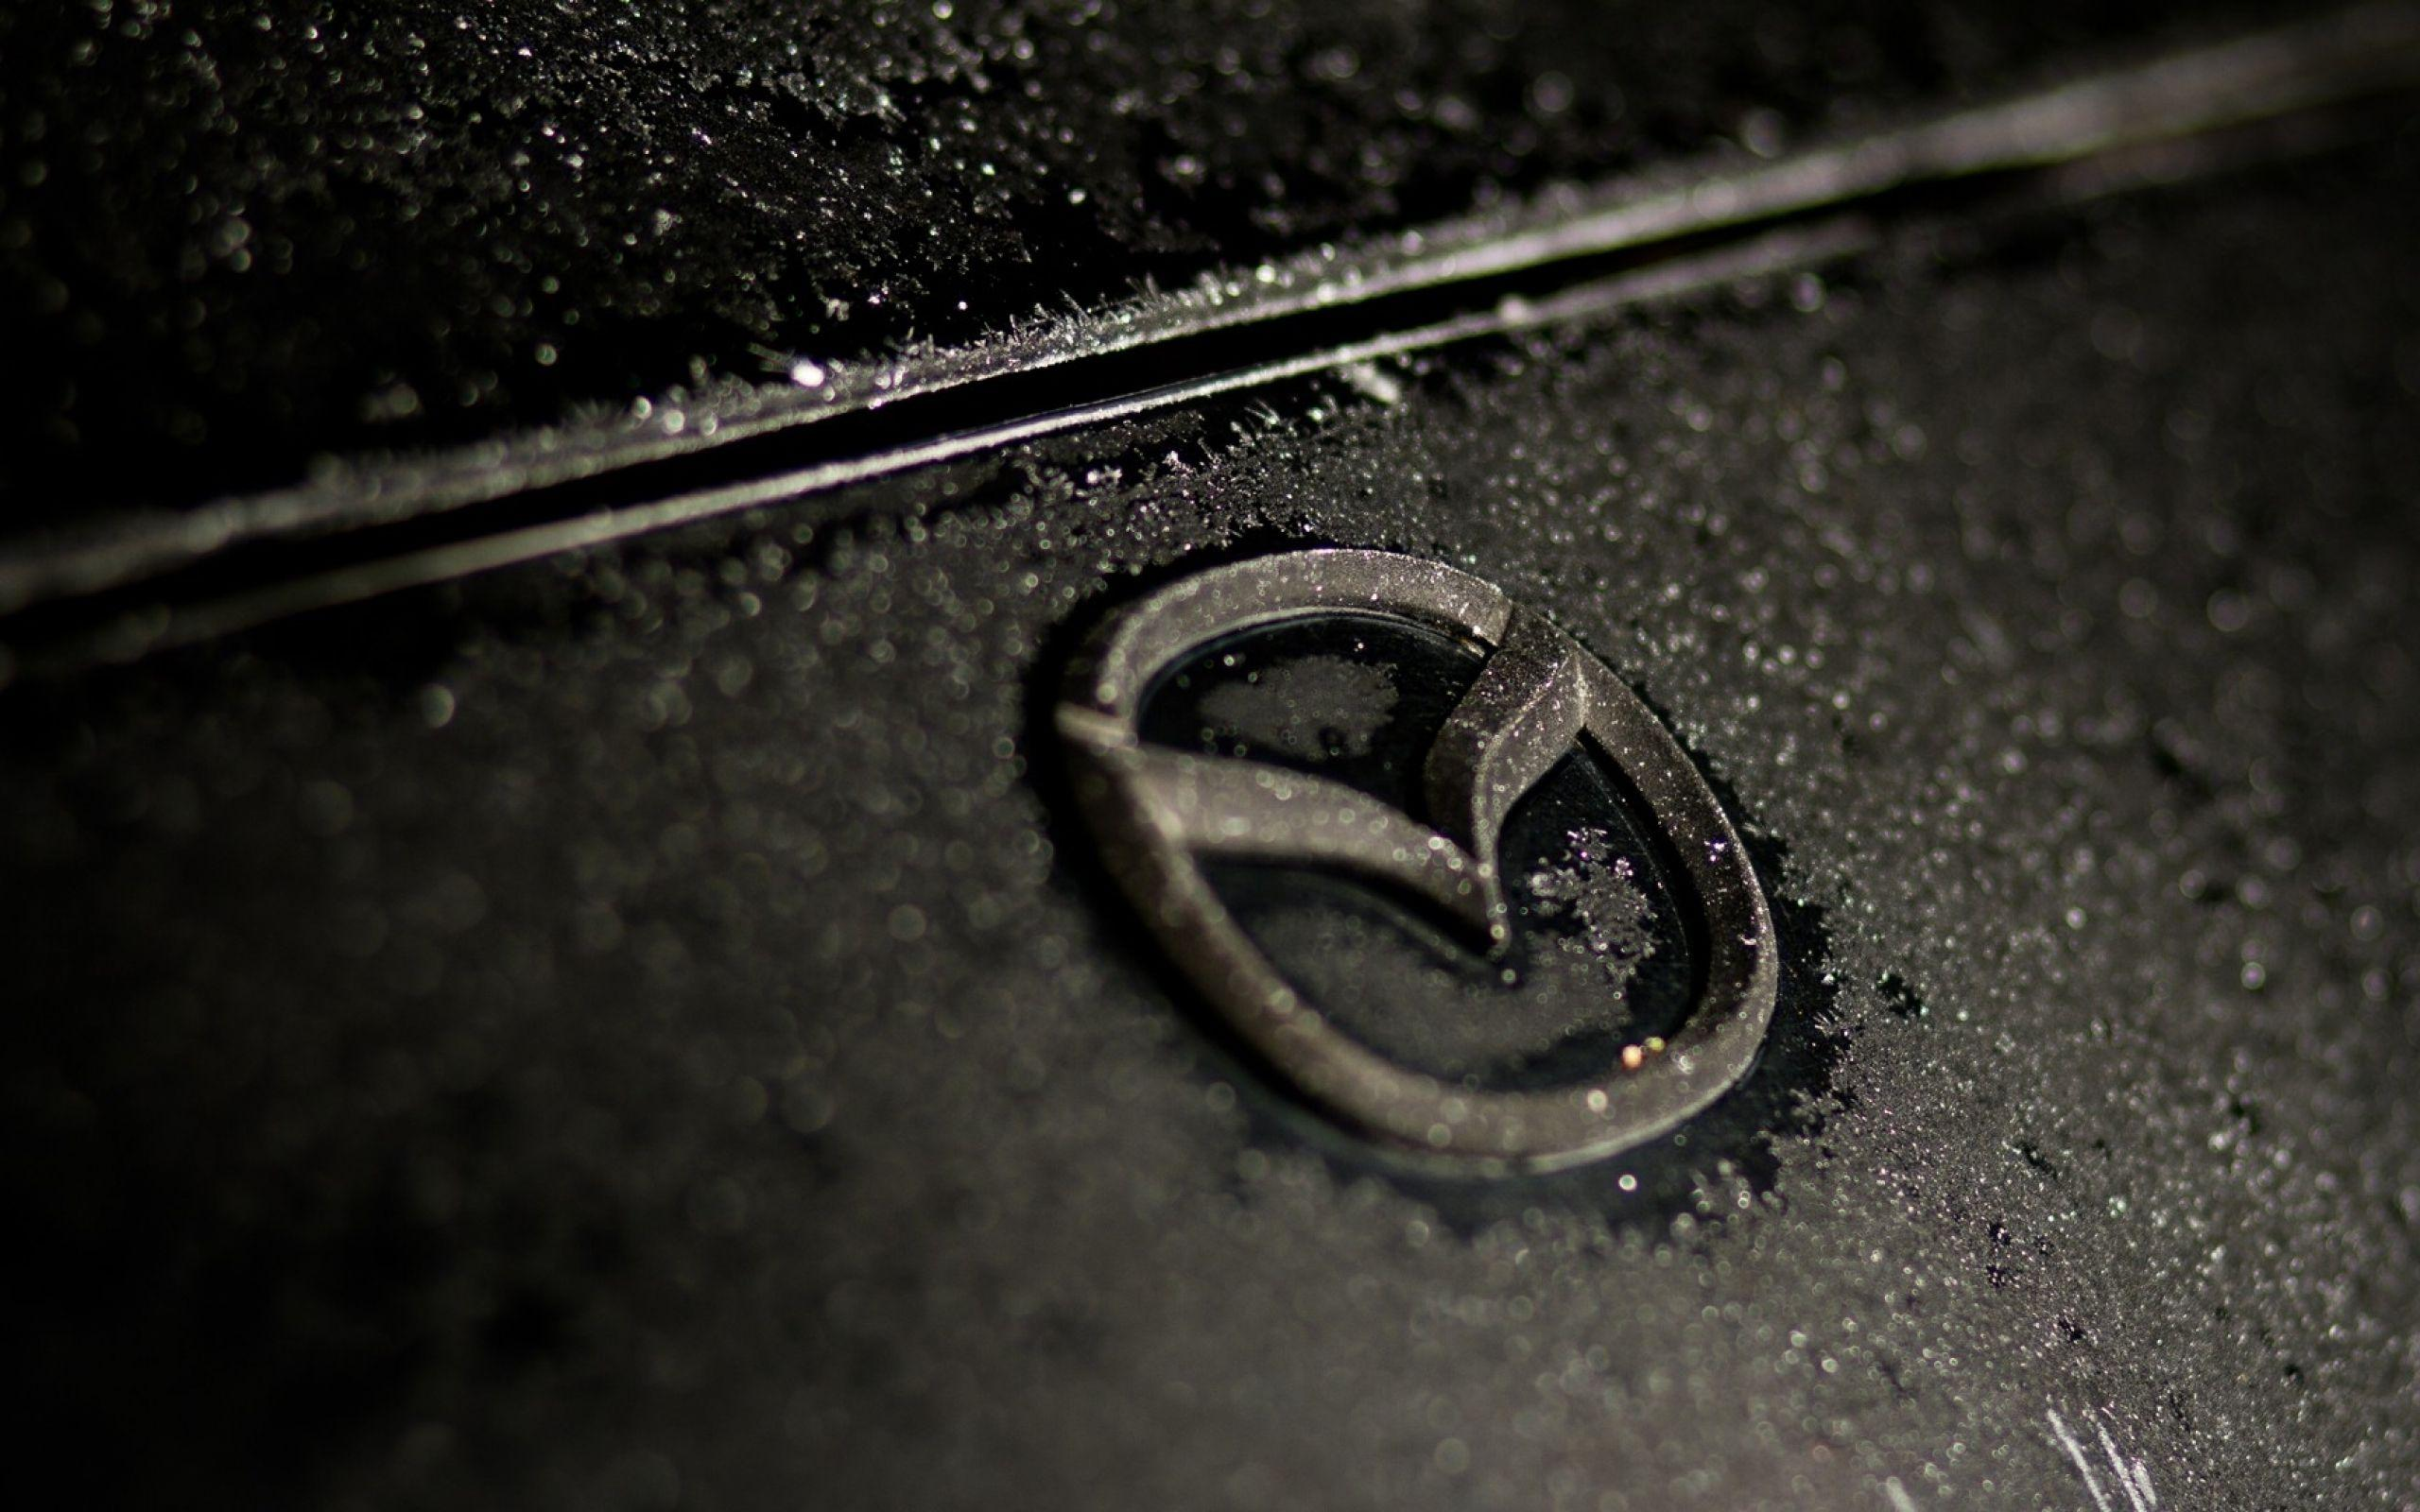 Mazda Car Logo Wallpaper Backgrounds 58996 2560x1600 px